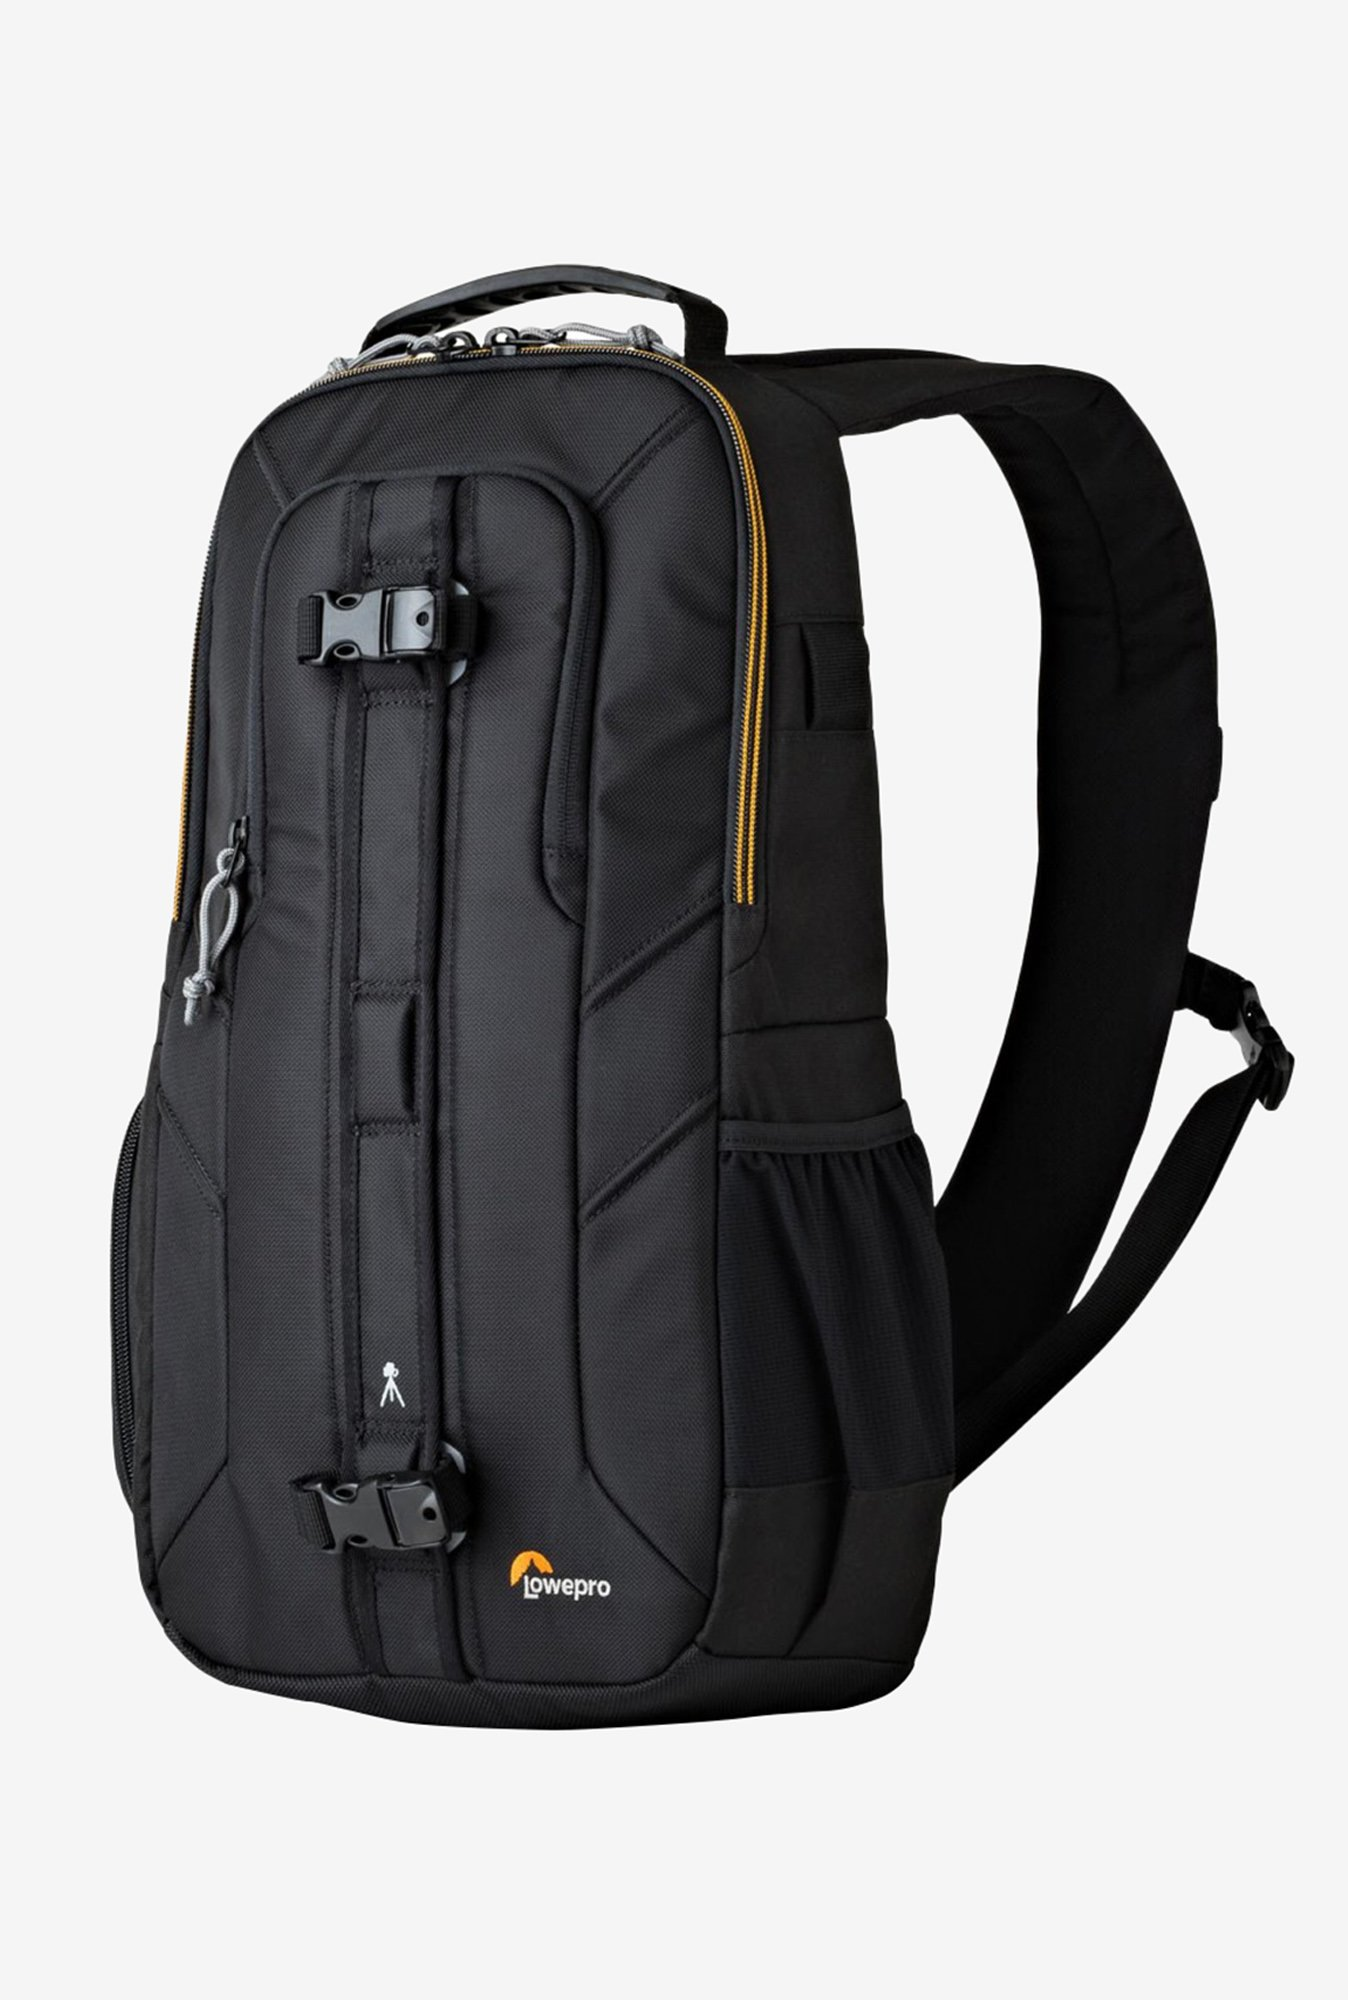 Lowepro Slingshot Edge 250AW Backpack Black